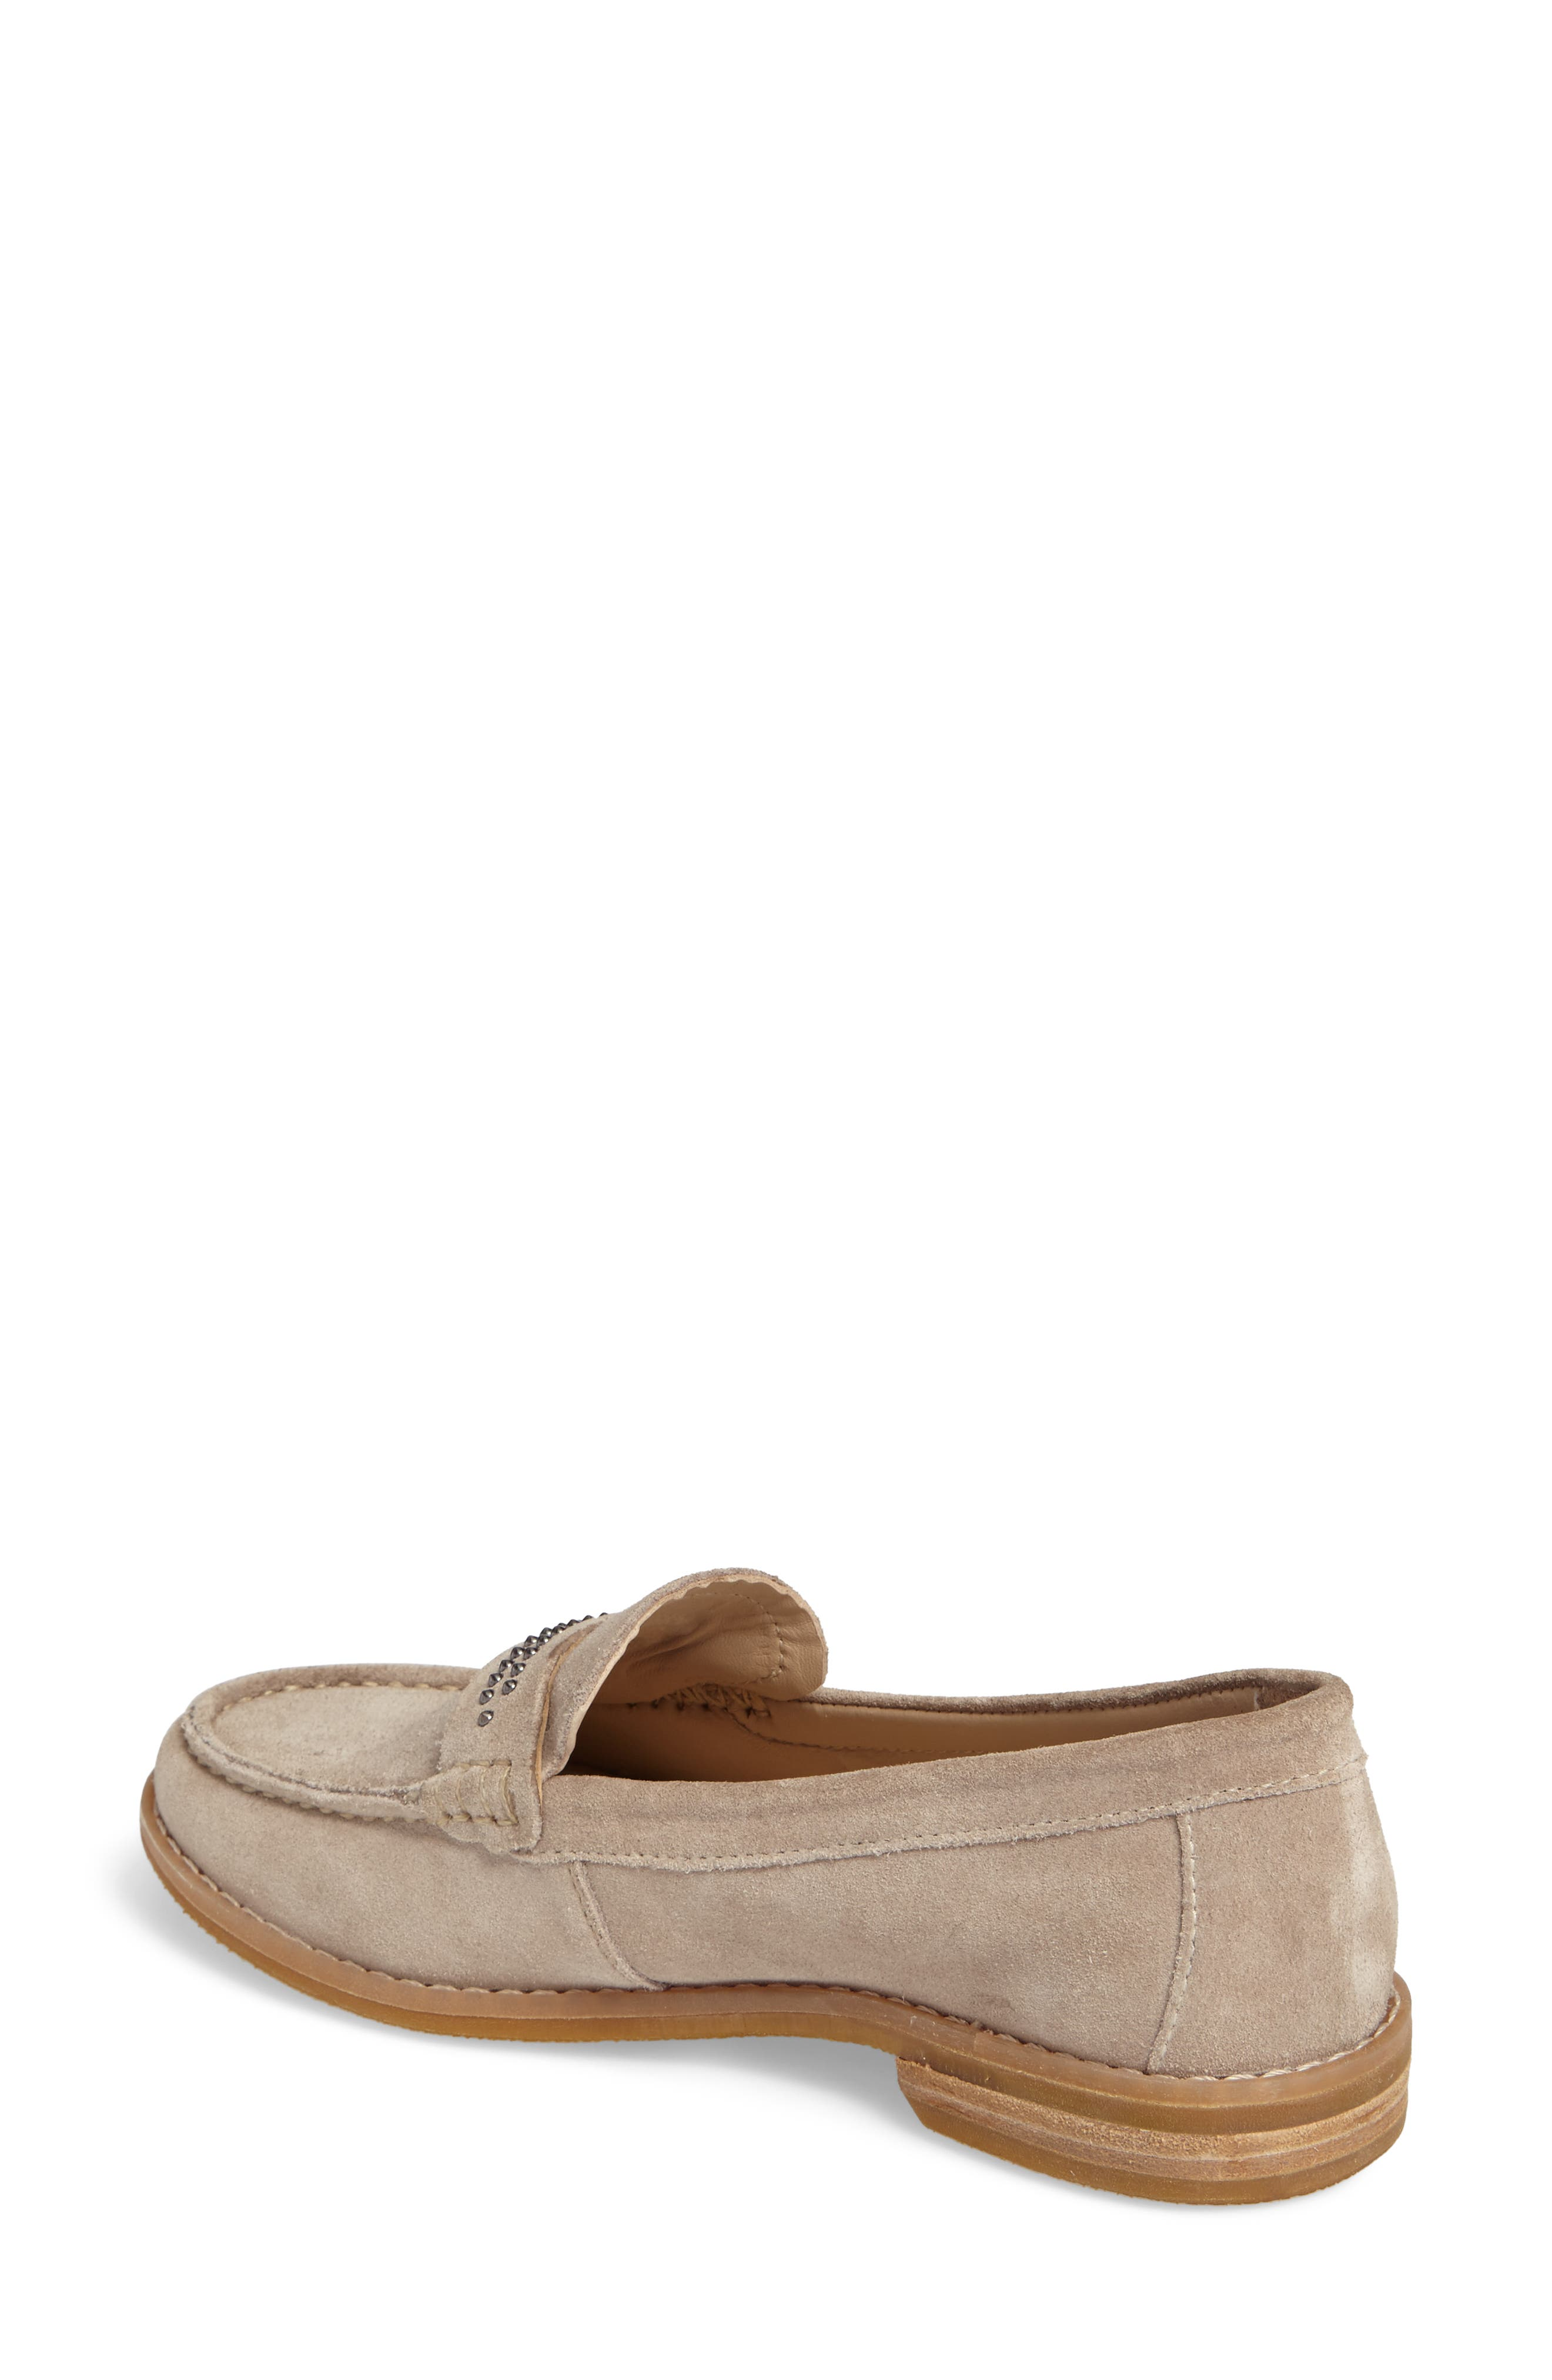 Aubree Chardon Loafer,                             Alternate thumbnail 2, color,                             Taupe Suede